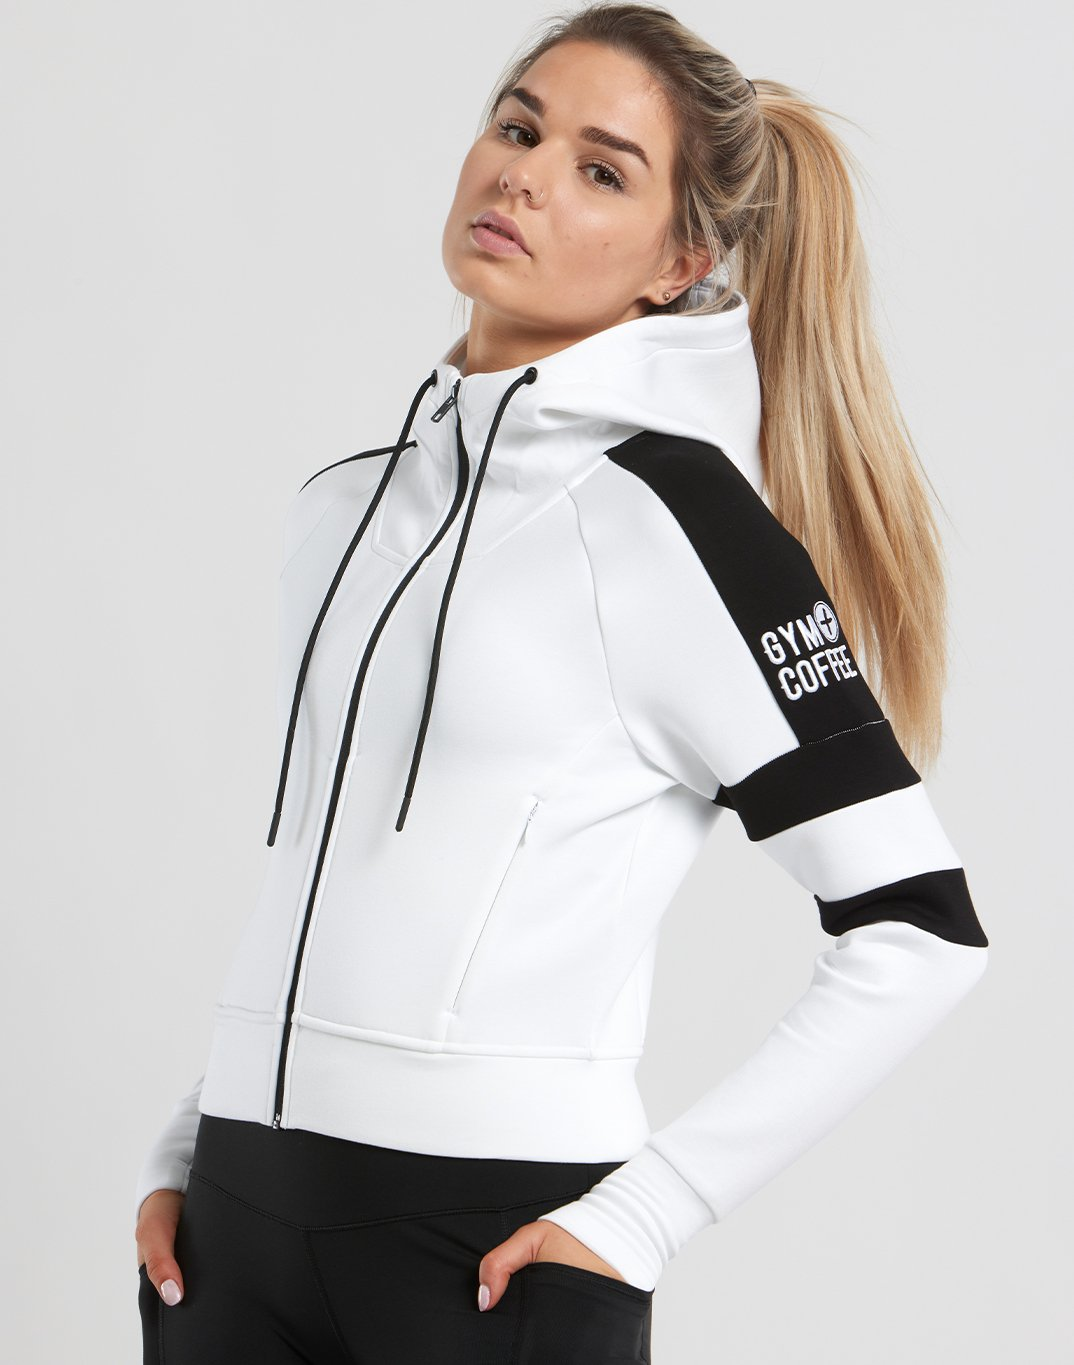 Gym Plus Coffee Hoodie Womens Striker Crop Hoodie in White/Black Designed in Ireland